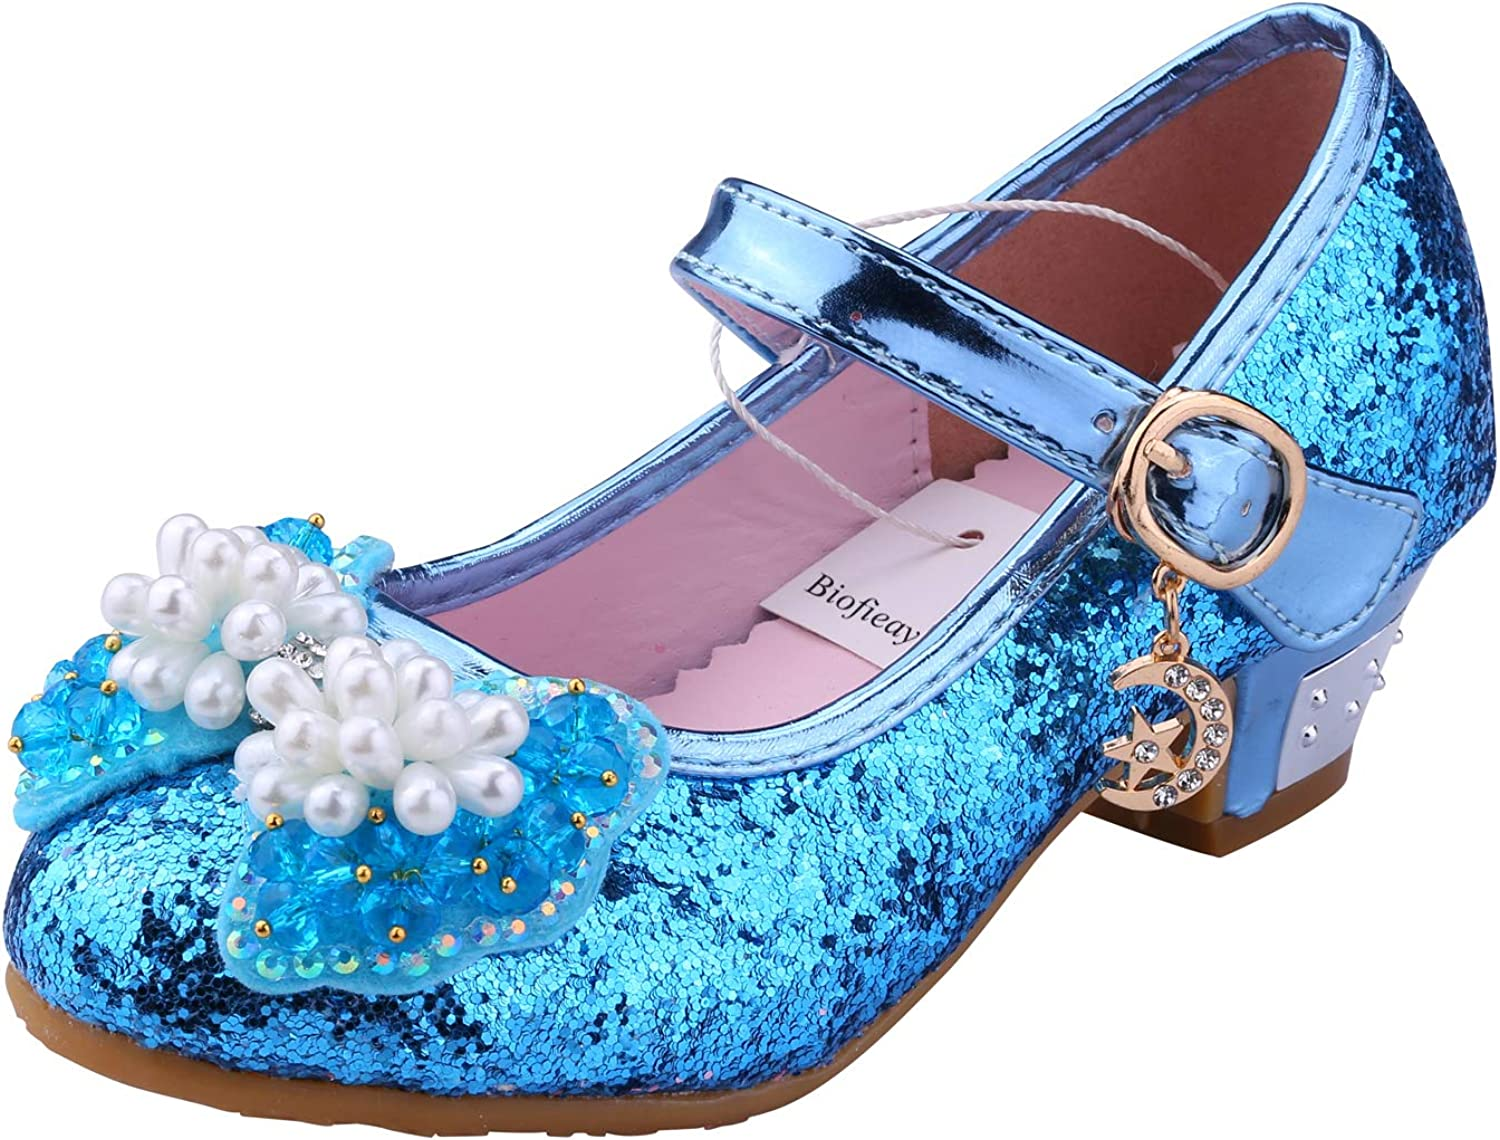 Biofieay Girls Princess Shoes Sparkly Cosplay Party Mary Jane Wedding Dress Low Heel Court Sandals